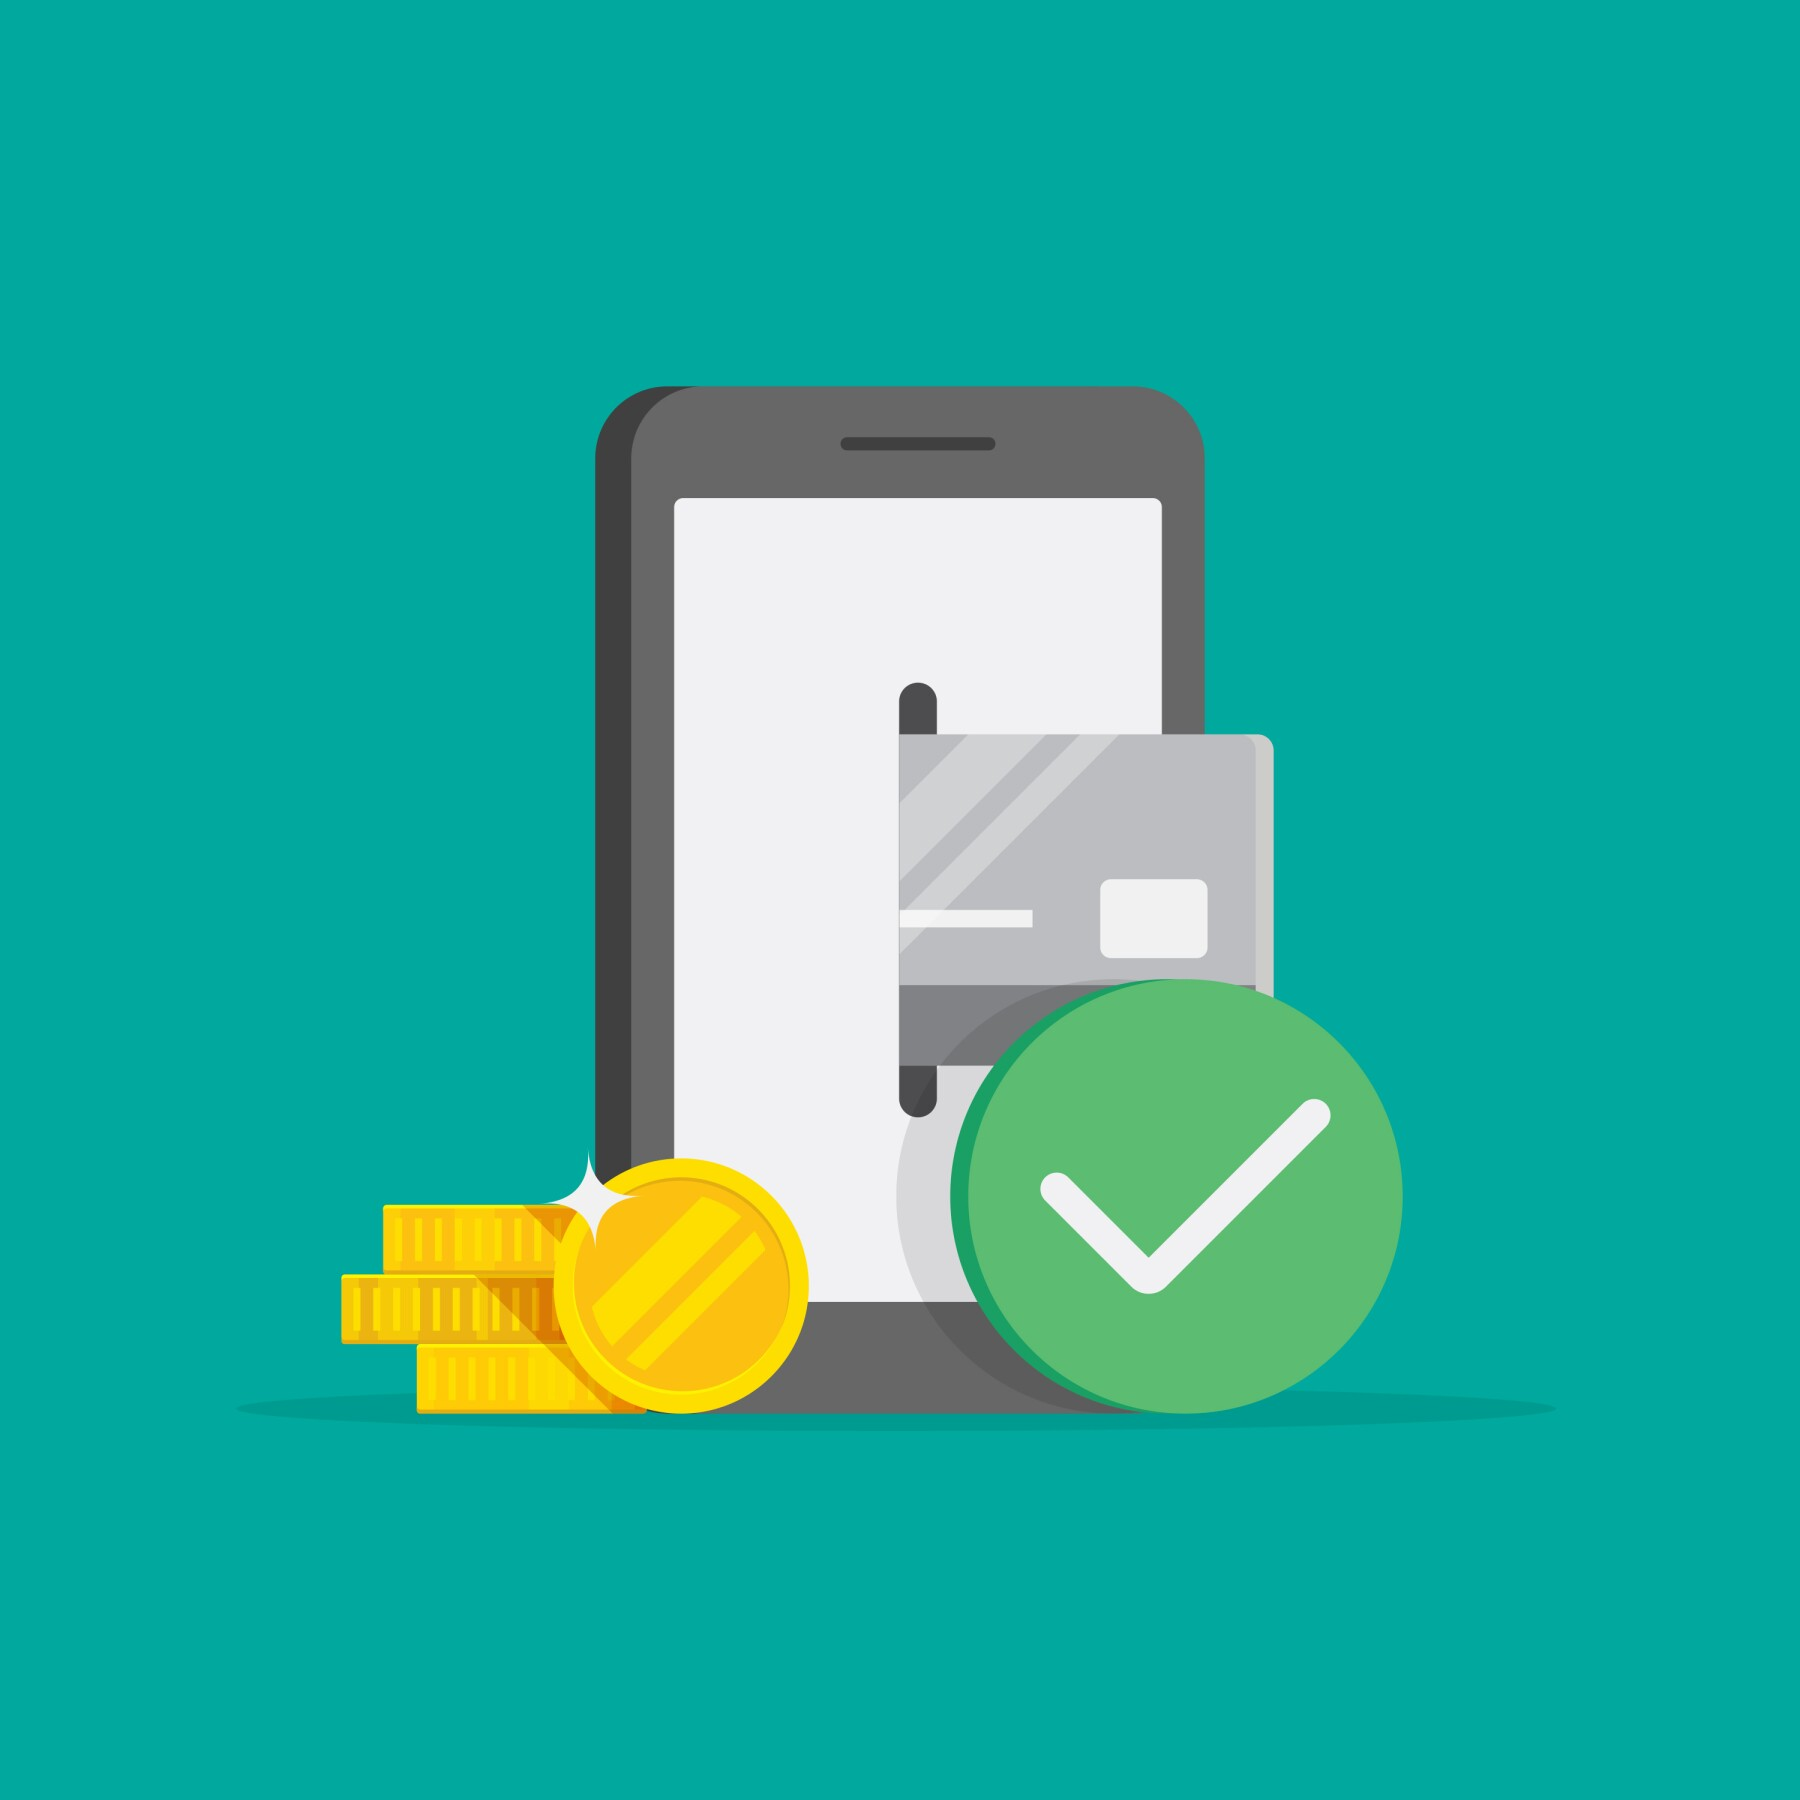 Mobile Payment Vector Illustration and Flat Design.